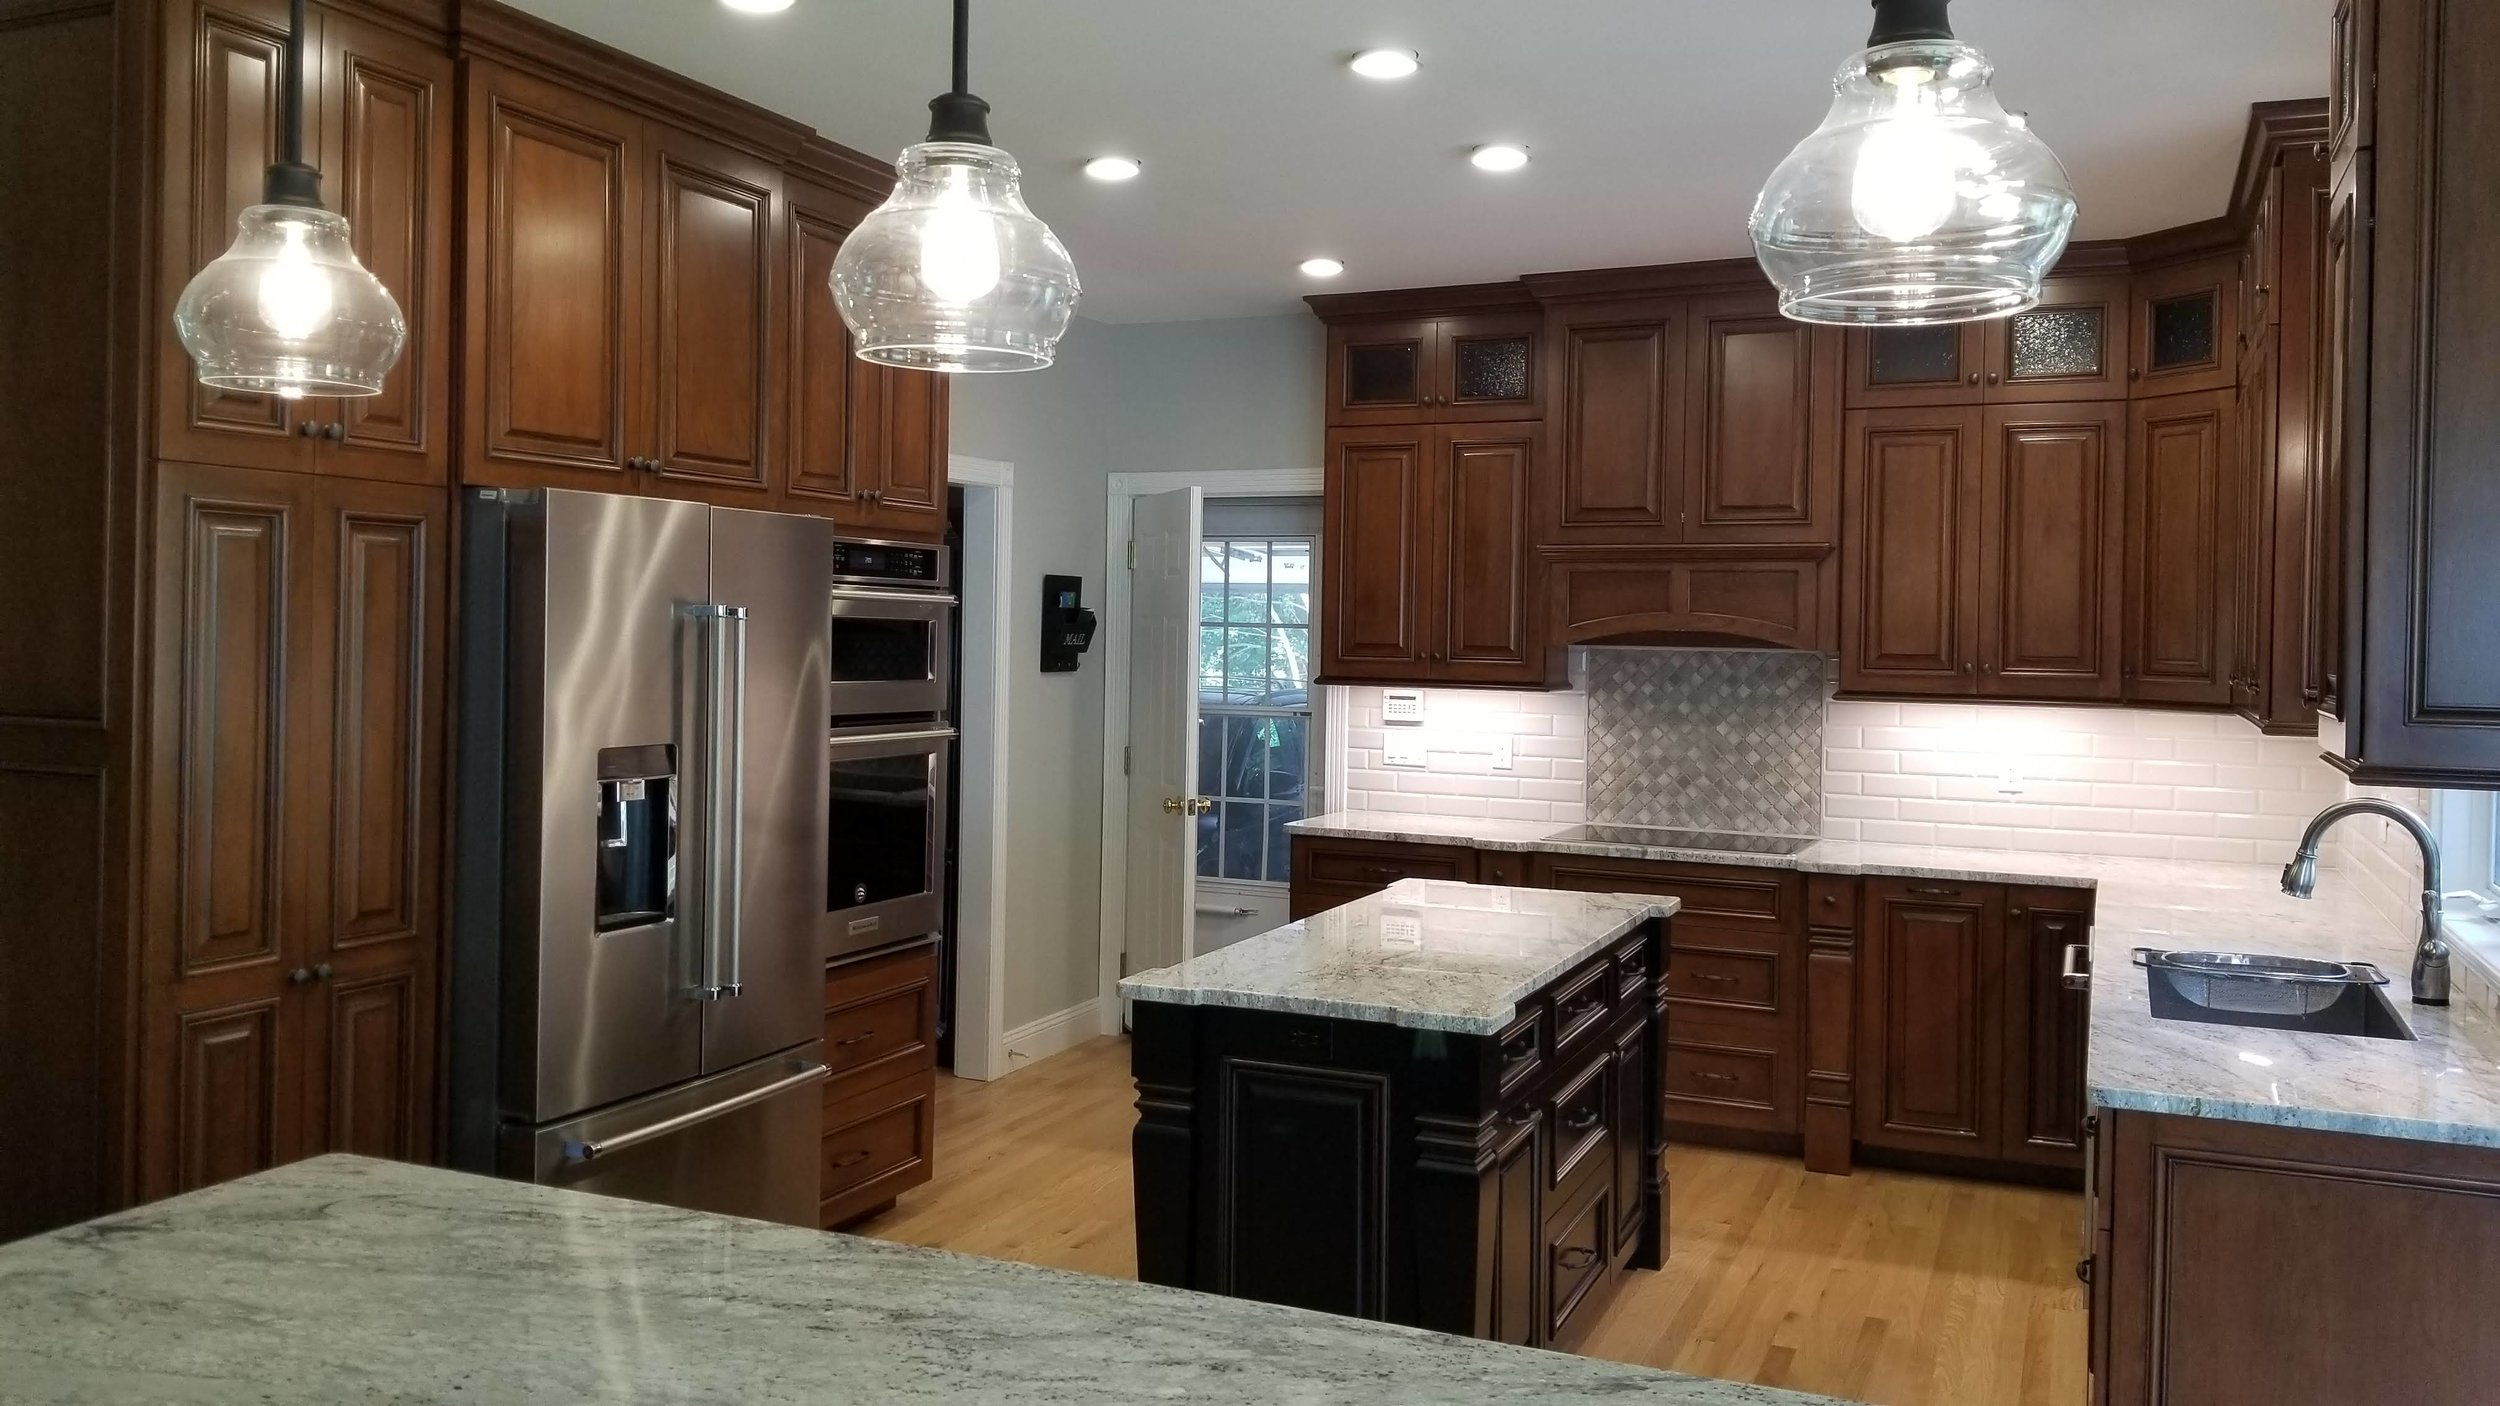 Shaw Remodeling - After photo - Kitchen Remodel and Renovations in East Lyme CT (8).jpg